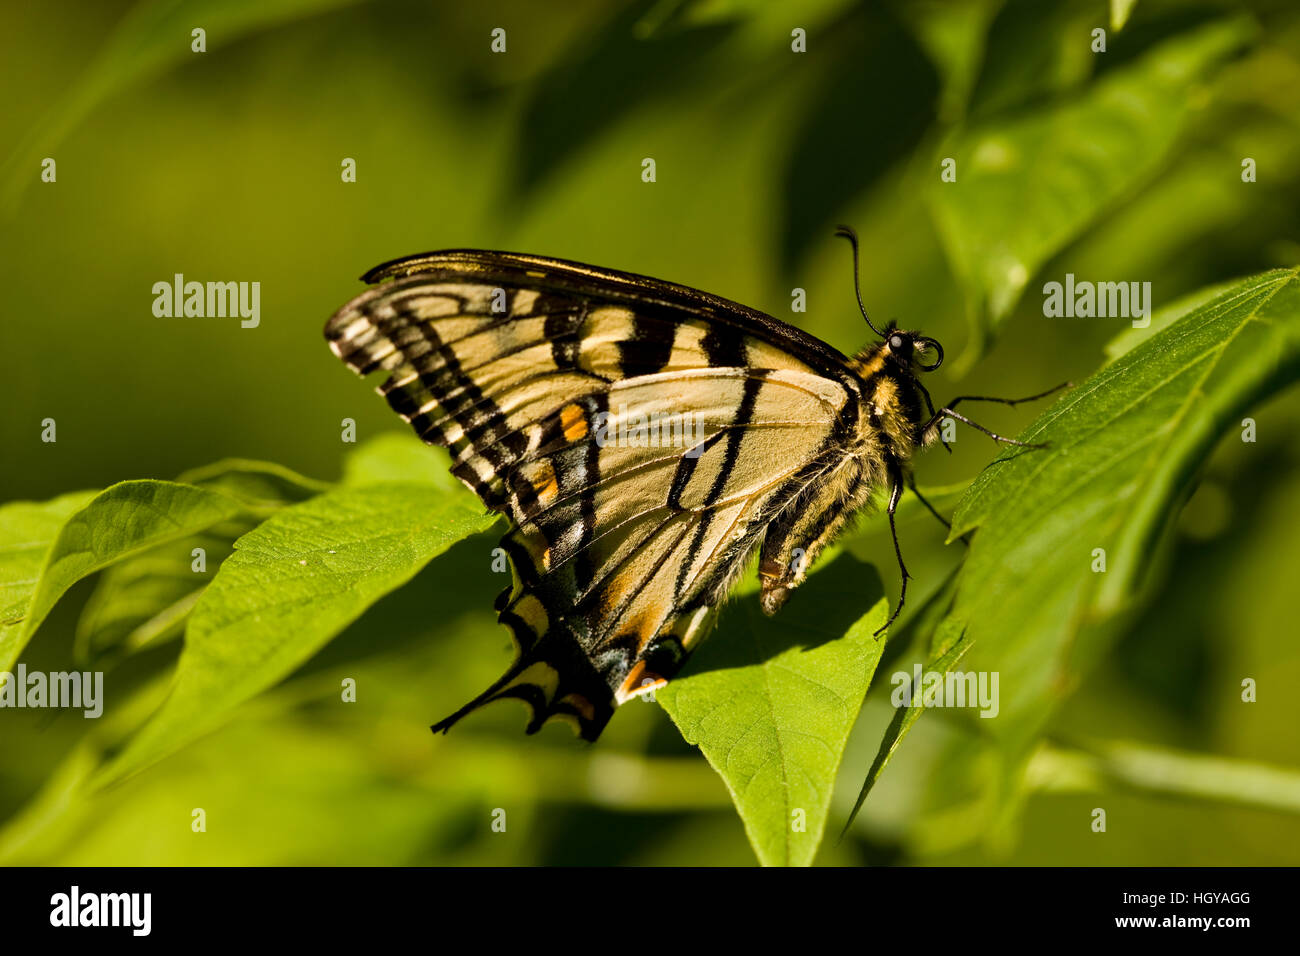 An eastern tiger swallowtail butterfly, Papilio glaucus, in Sabins Pasture, Montpelier, Vermont. - Stock Image